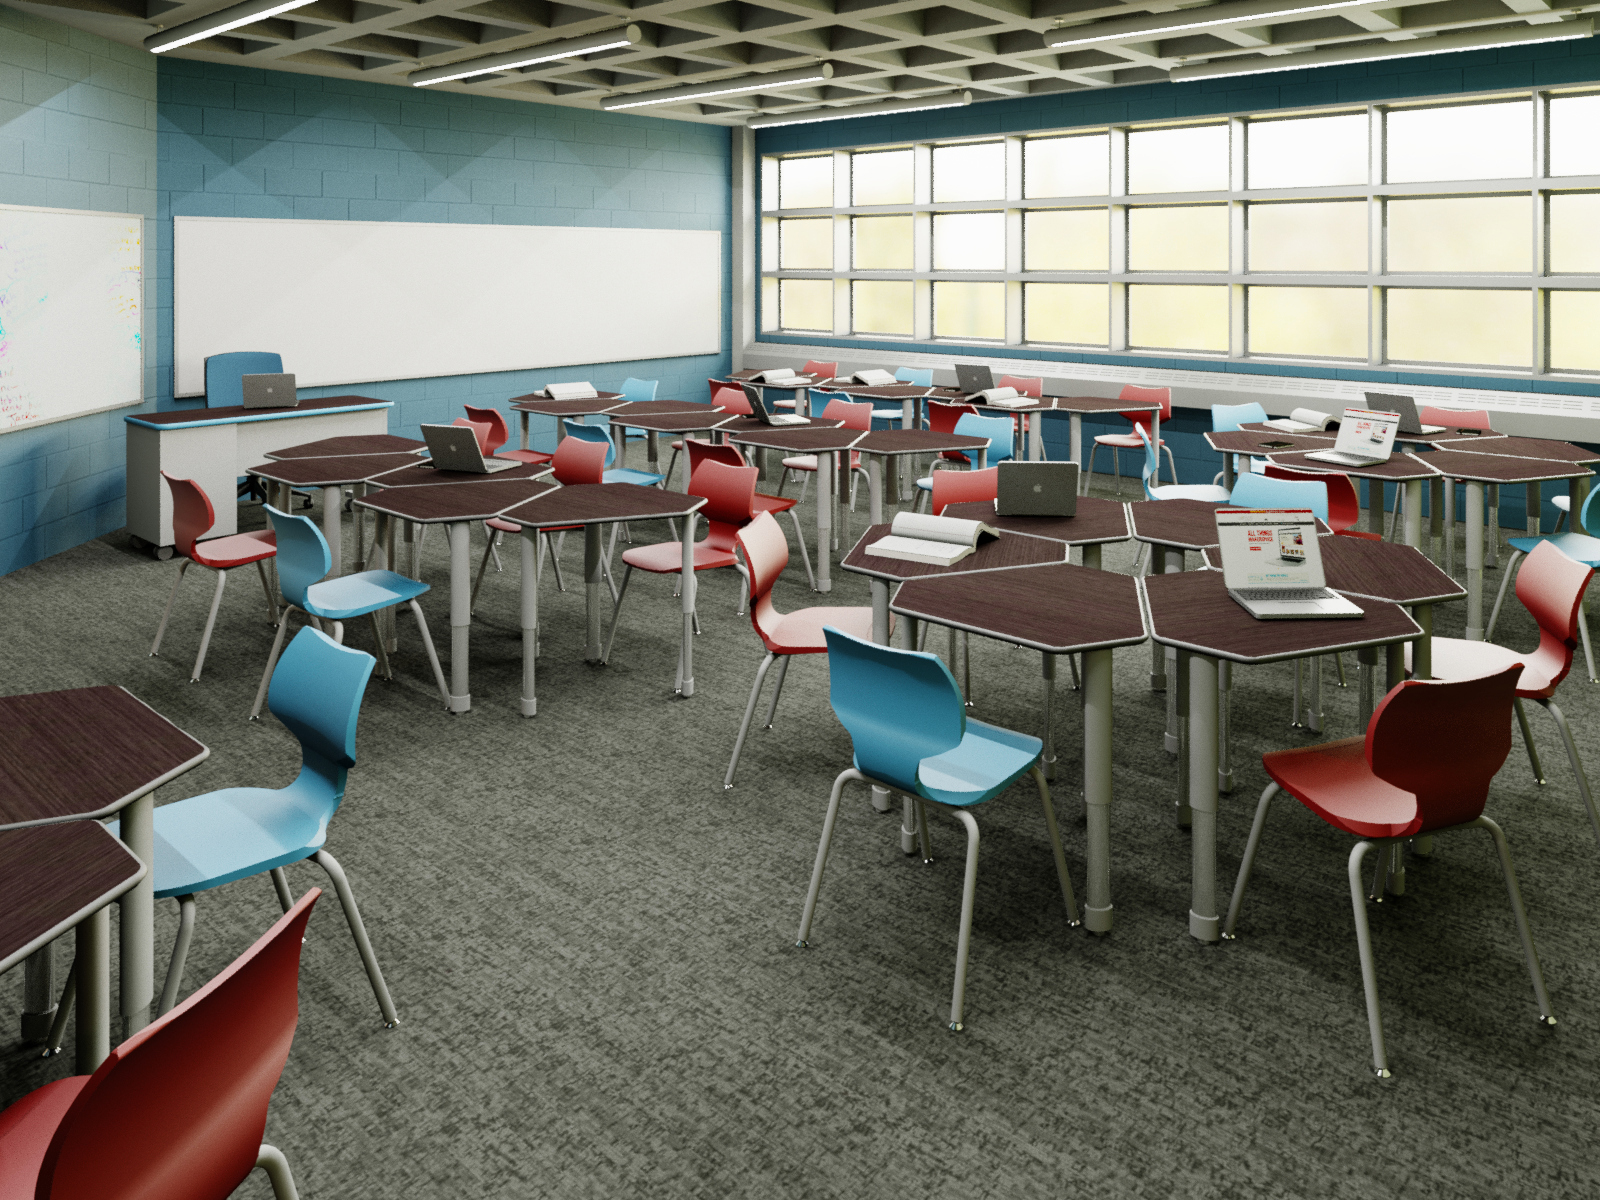 Classroom learning environment